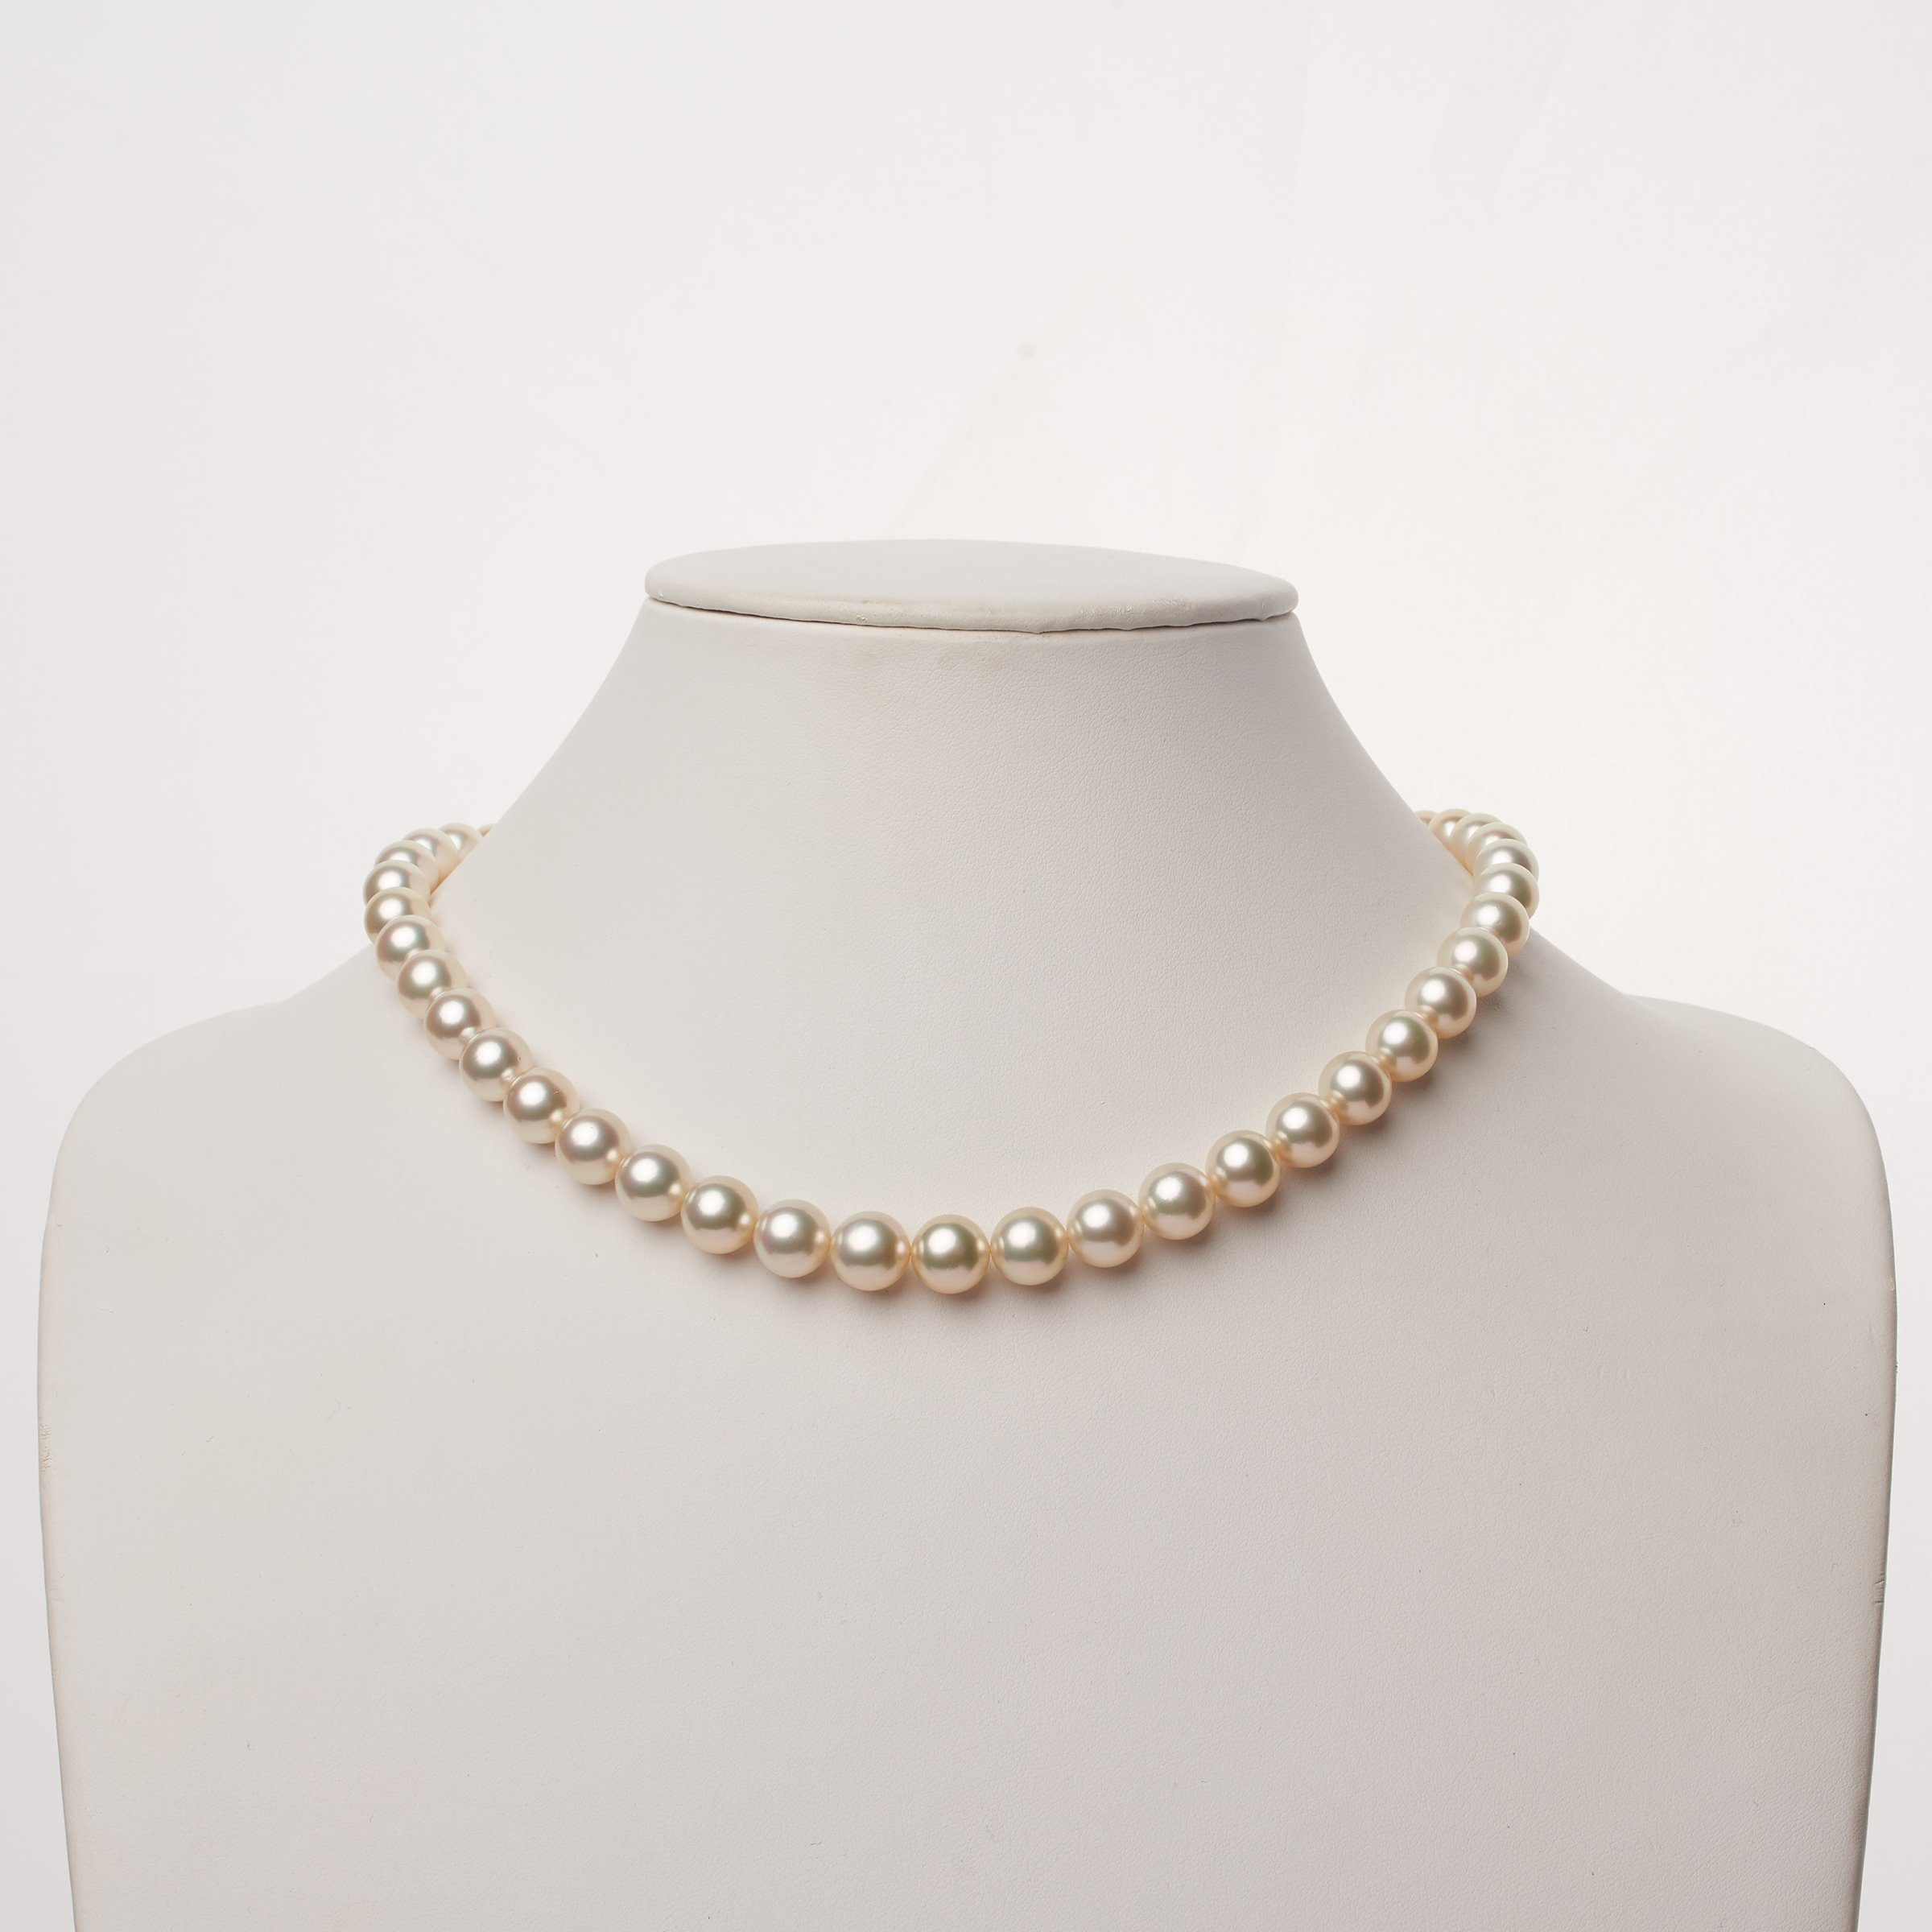 8.2-9.9 mm AA+/AAA White South Sea Round Pearl Necklace